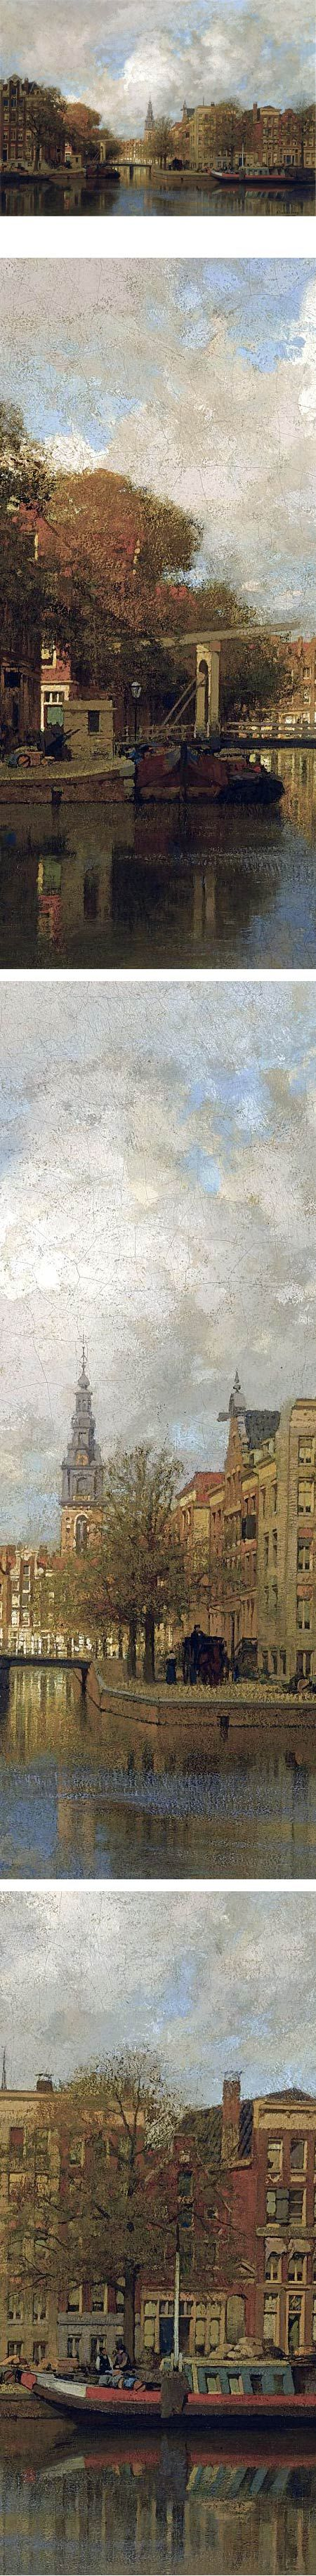 A View of the Groenburgwal with the Zuiderkerk, seen from the River Amstel, Amsterdam, Johannes Christiaan Karel Klinkenberg